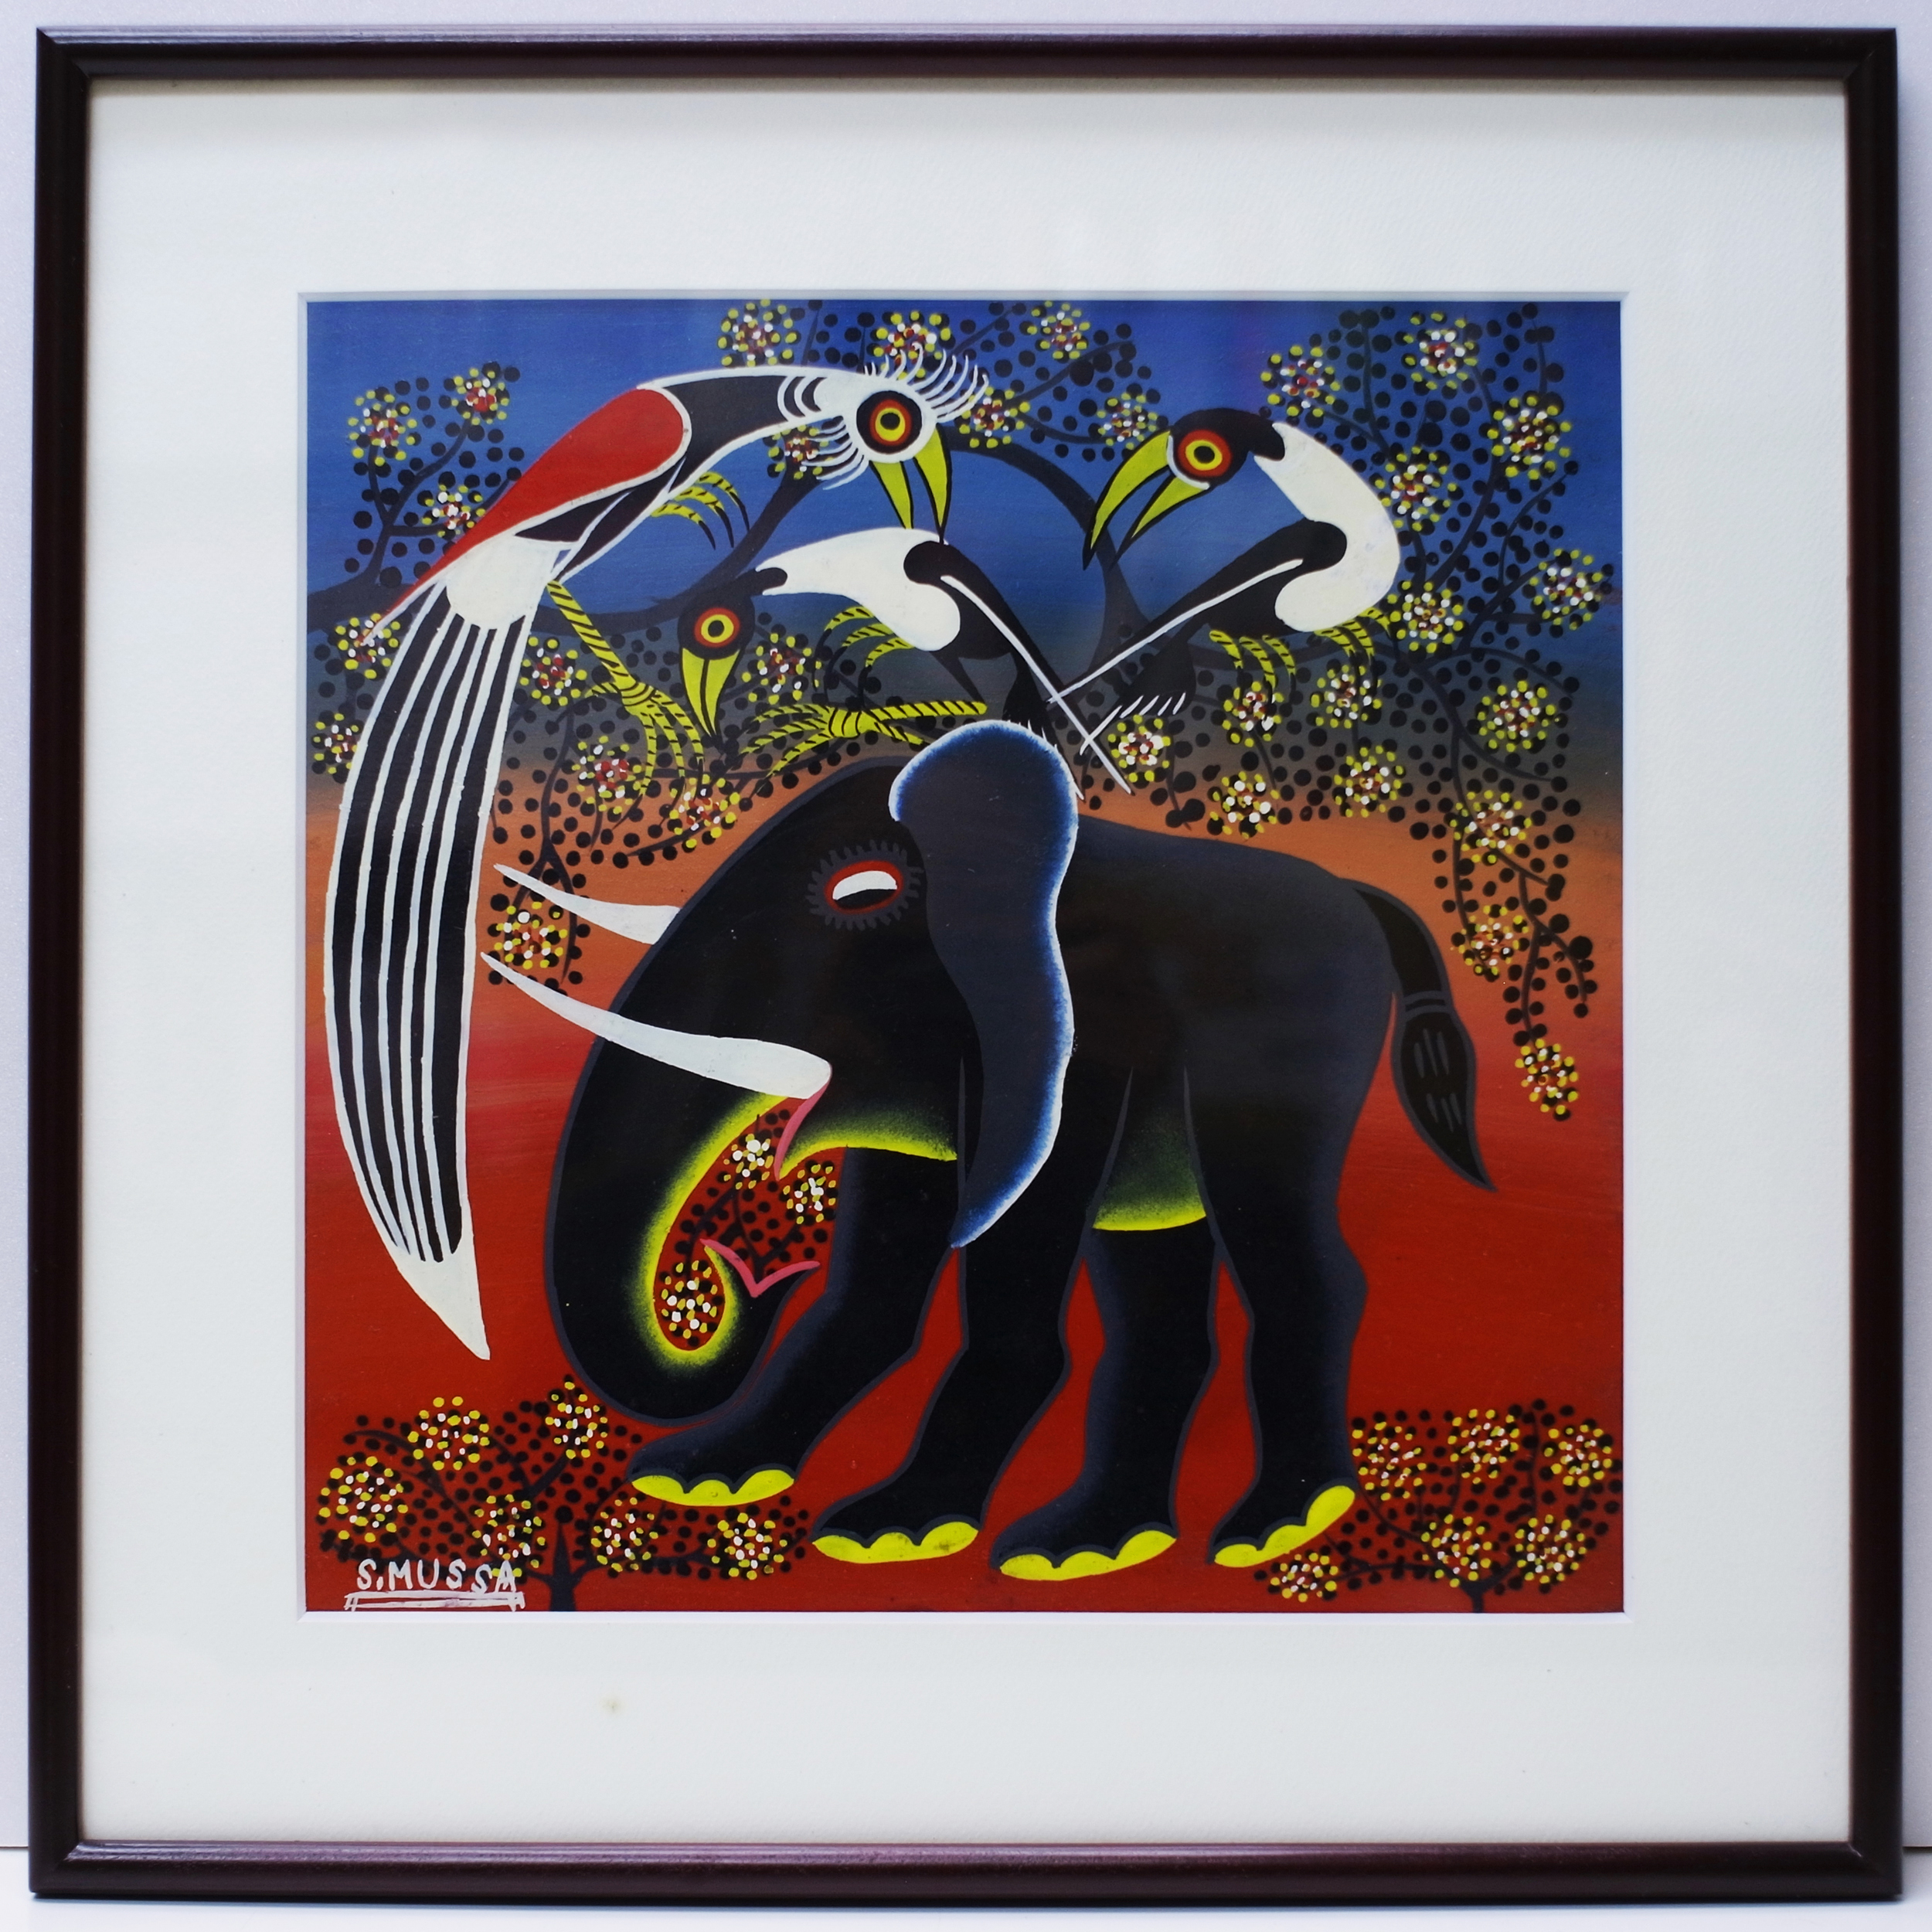 Elephant (300×300 Framed)